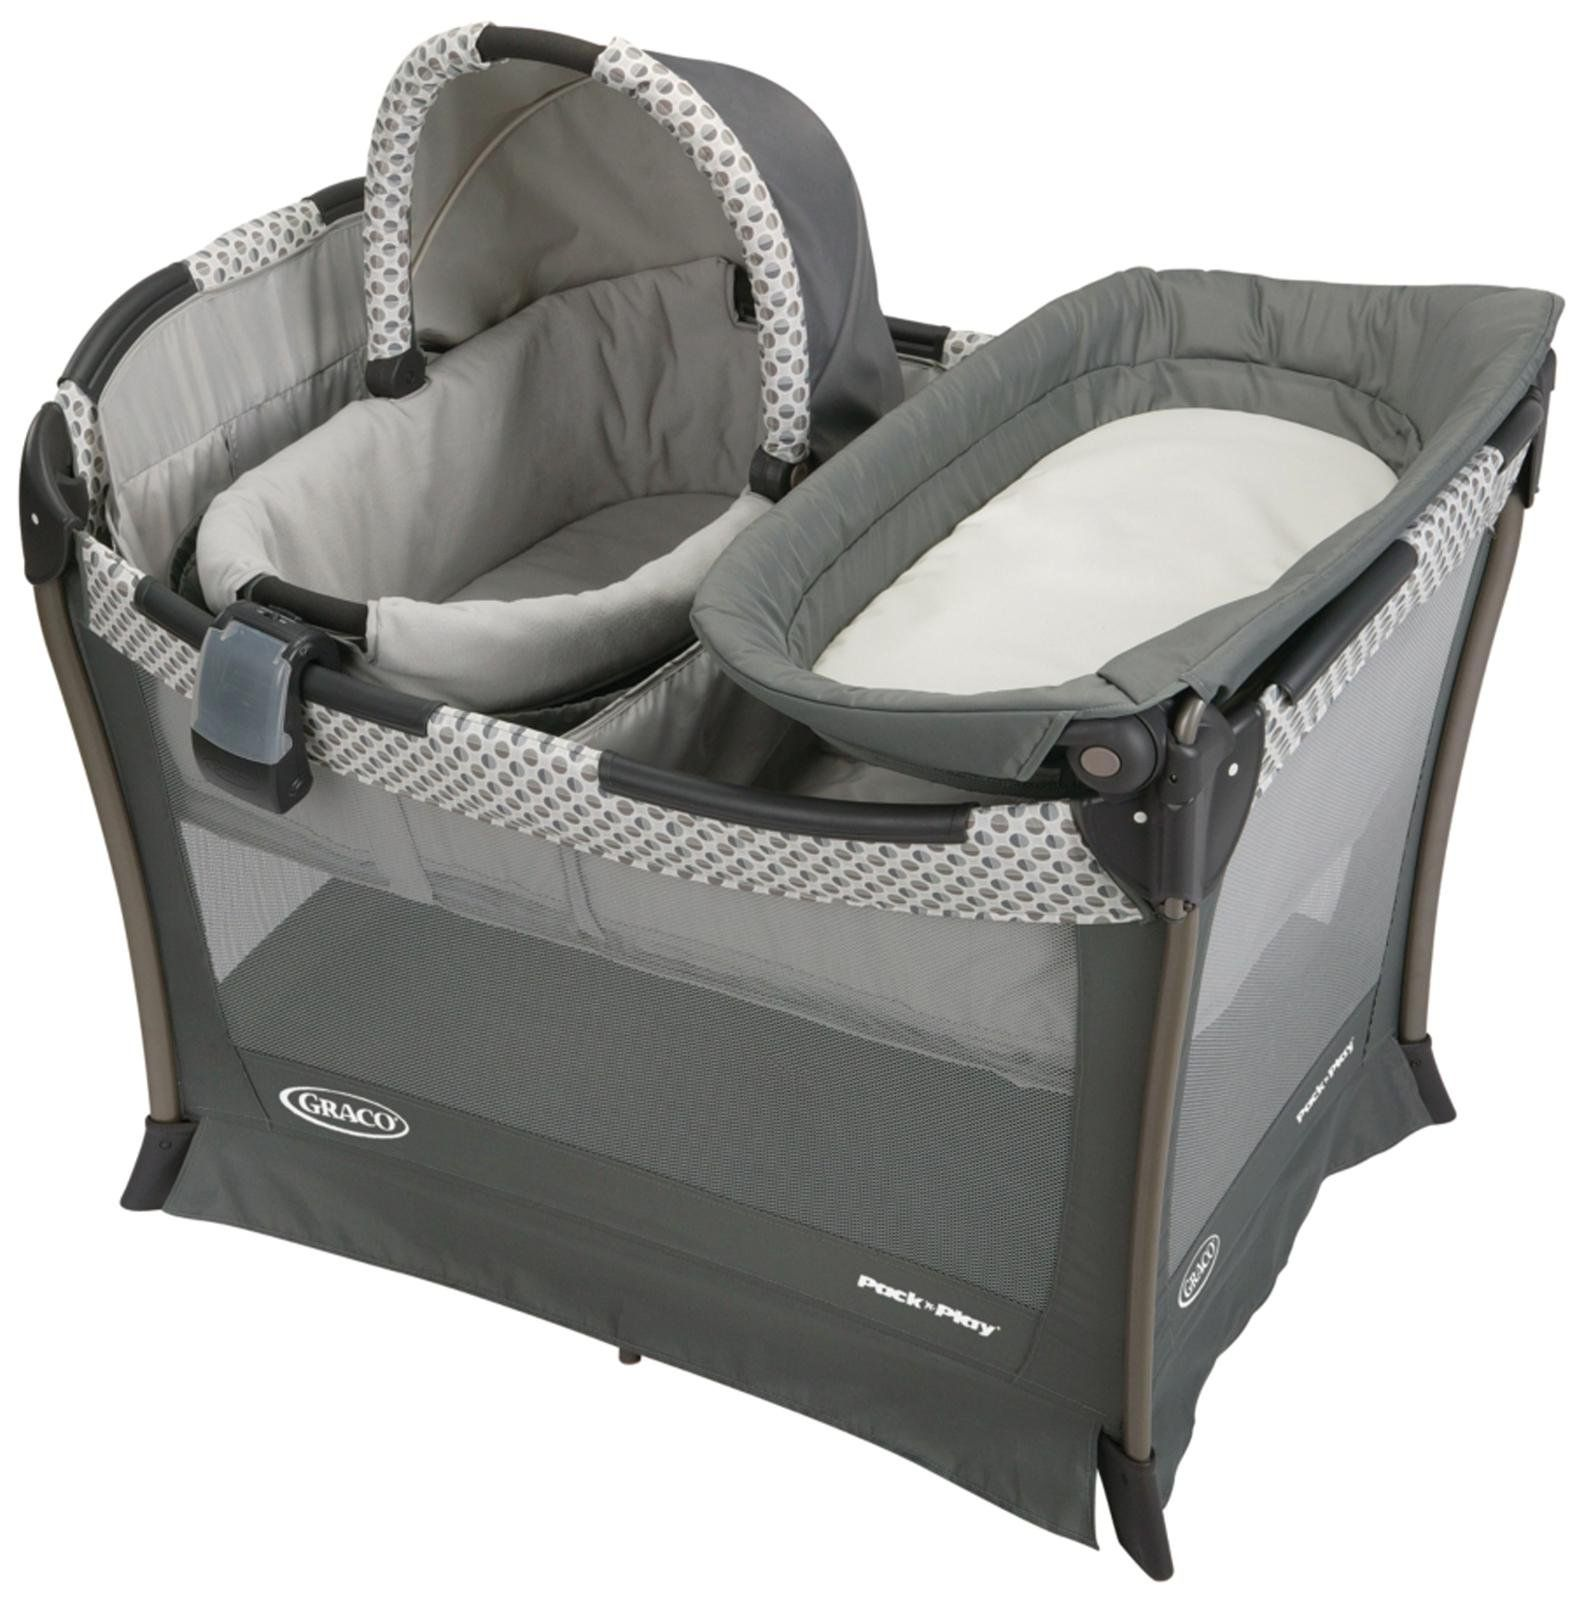 Graco Bassinet Pack And Play Google Search Graco Pack N Play Pack N Play Portable Bassinet